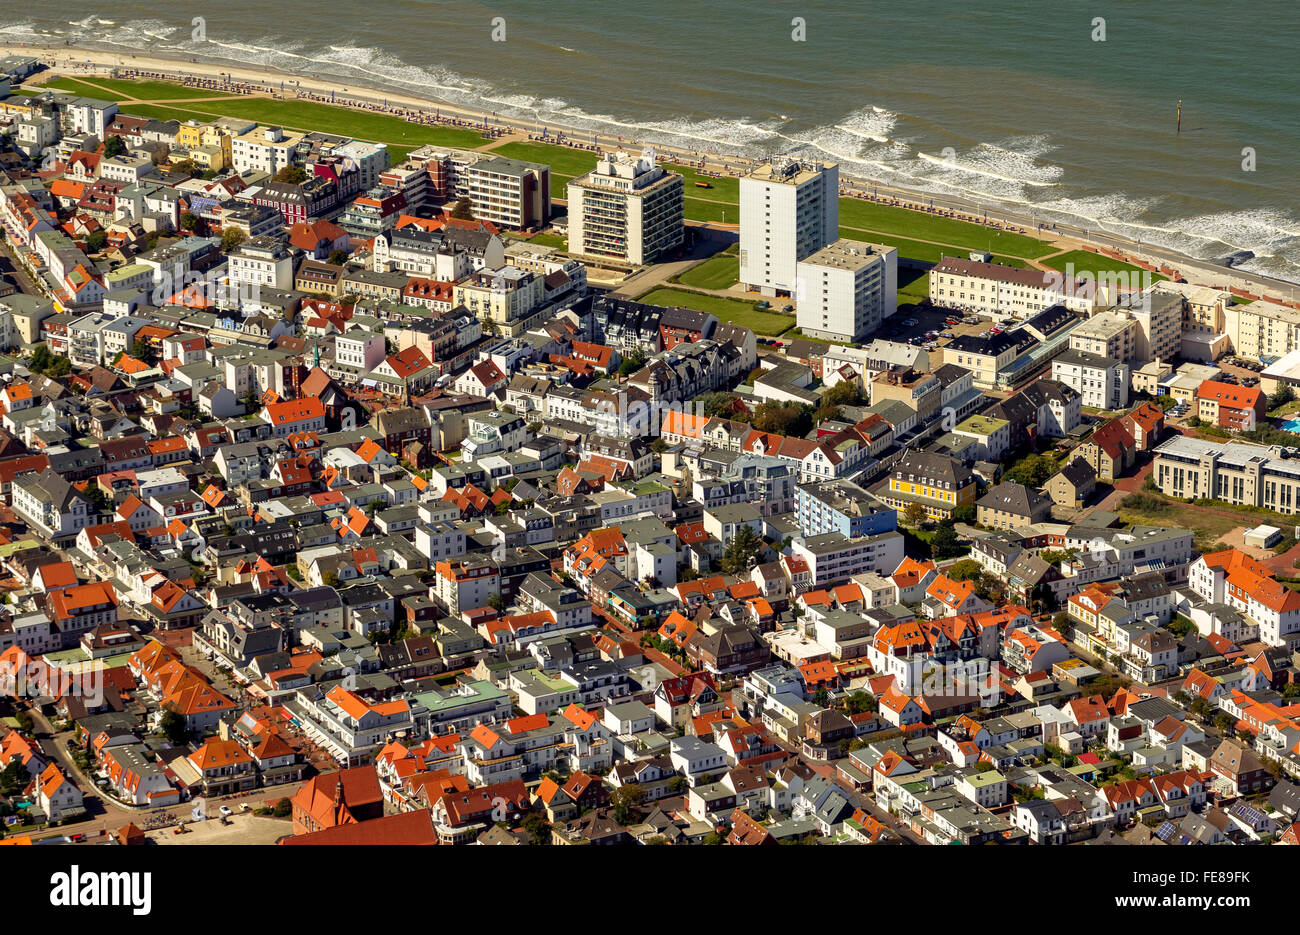 Aerial view, Norderney, North Sea, North Sea island, East Frisian Islands, Lower Saxony, Germany,  , Europe, Aerial Stock Photo